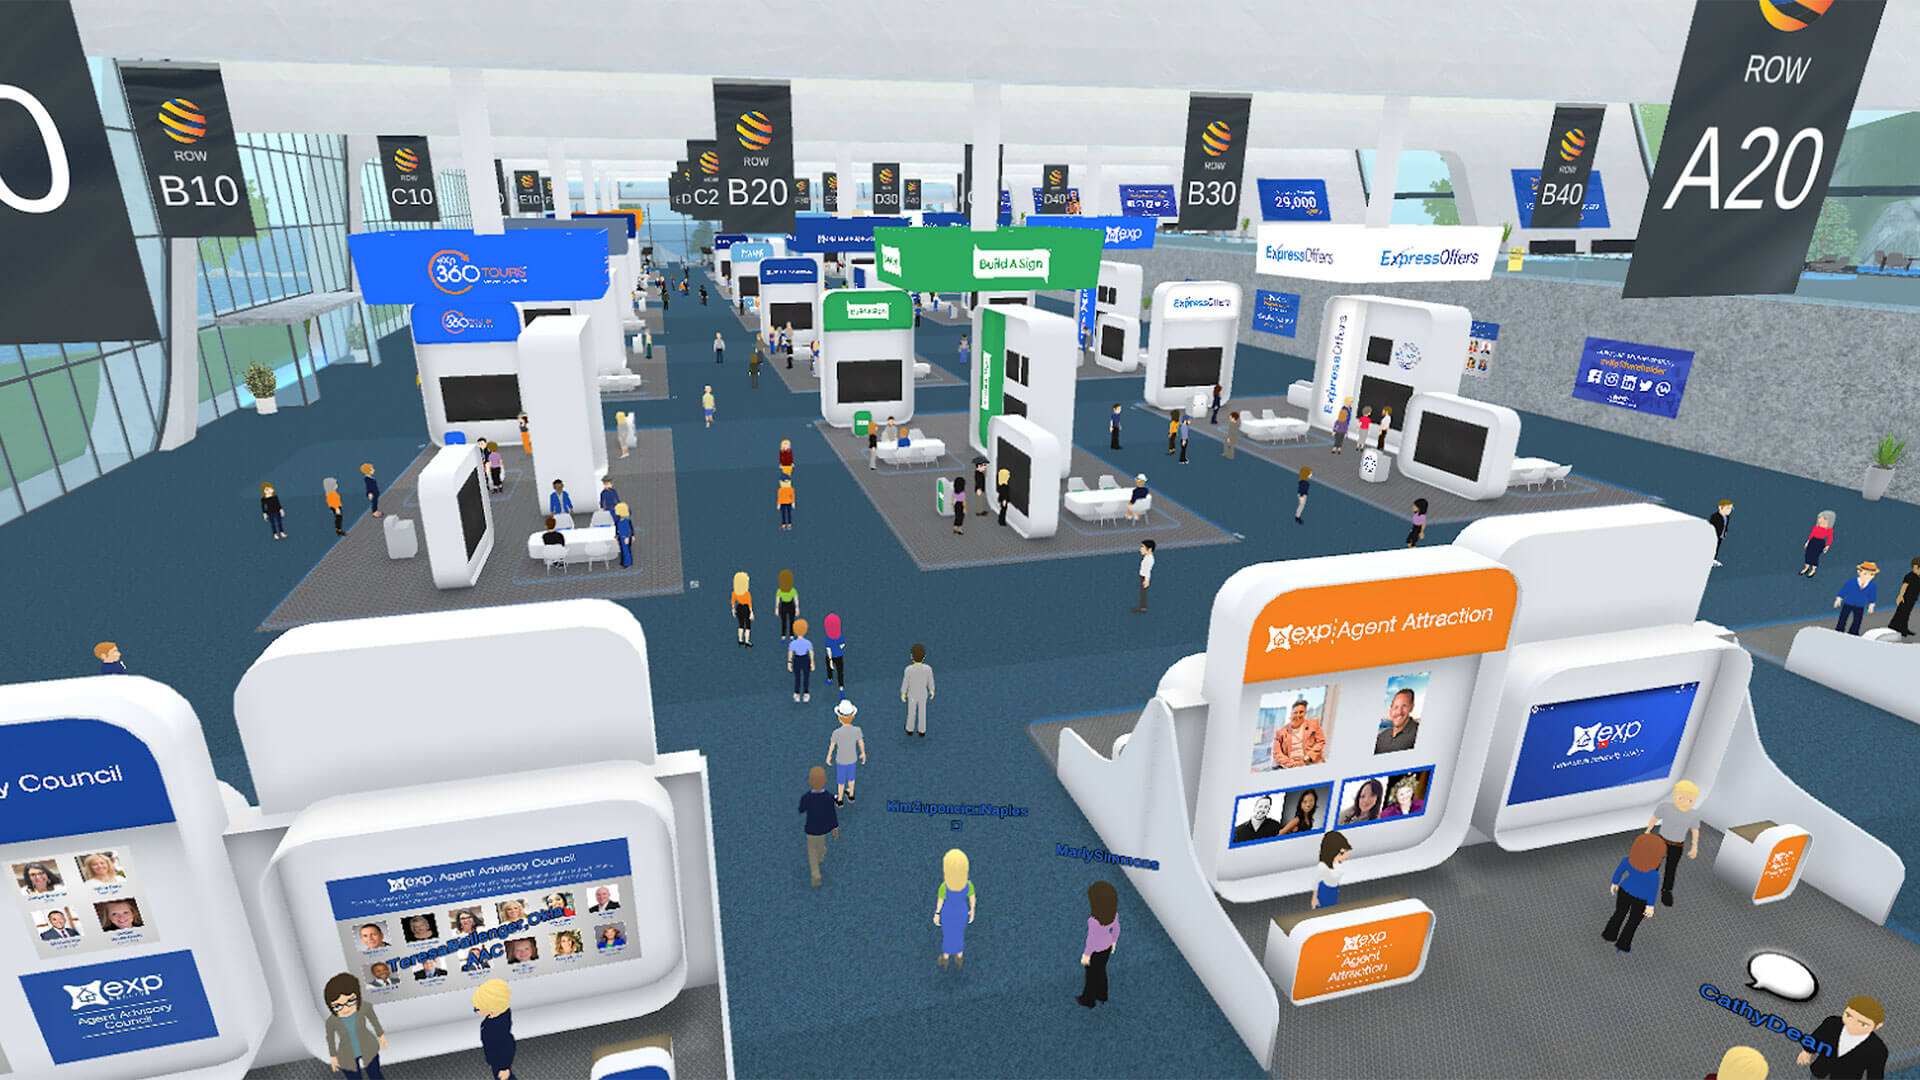 GoMeet overview of the expo hall at the digital campus